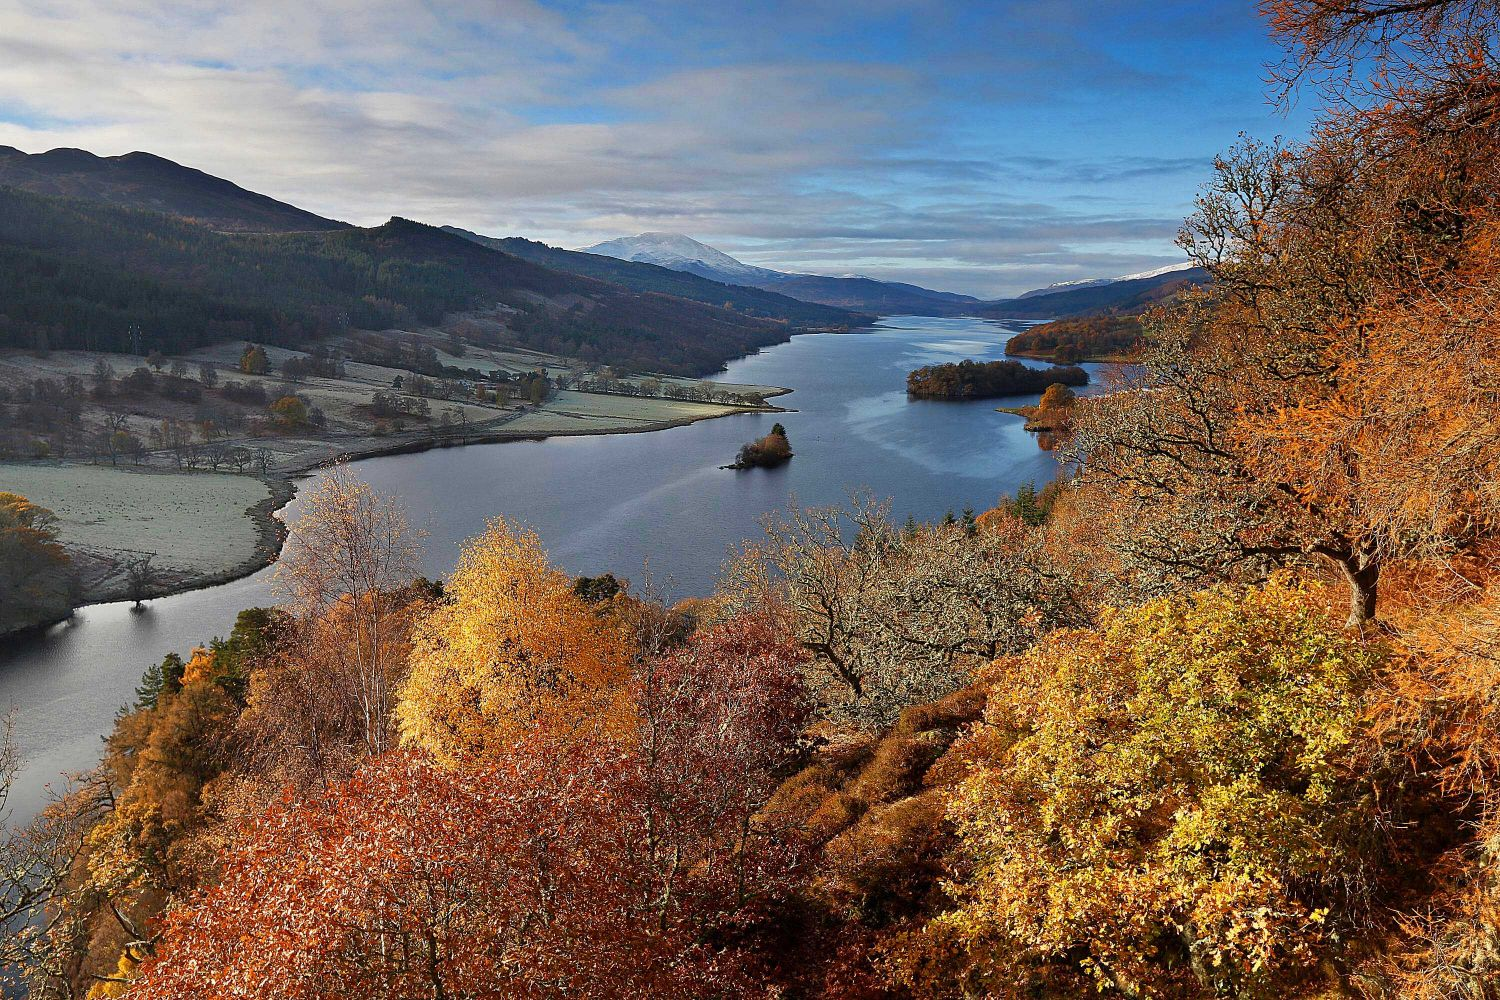 Queens View near Pitlochry